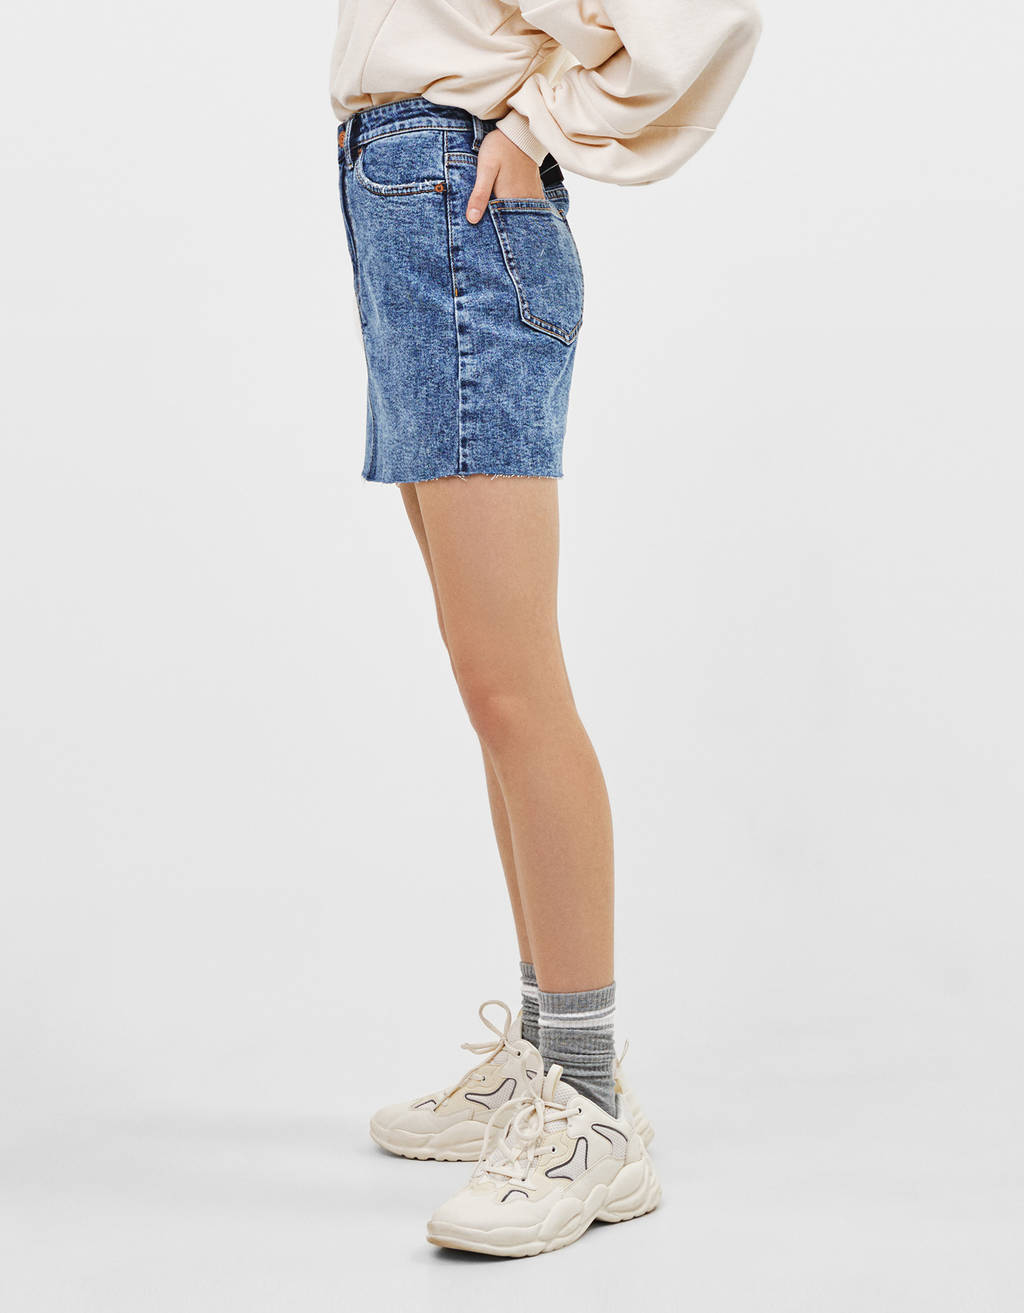 High waist denim skirt